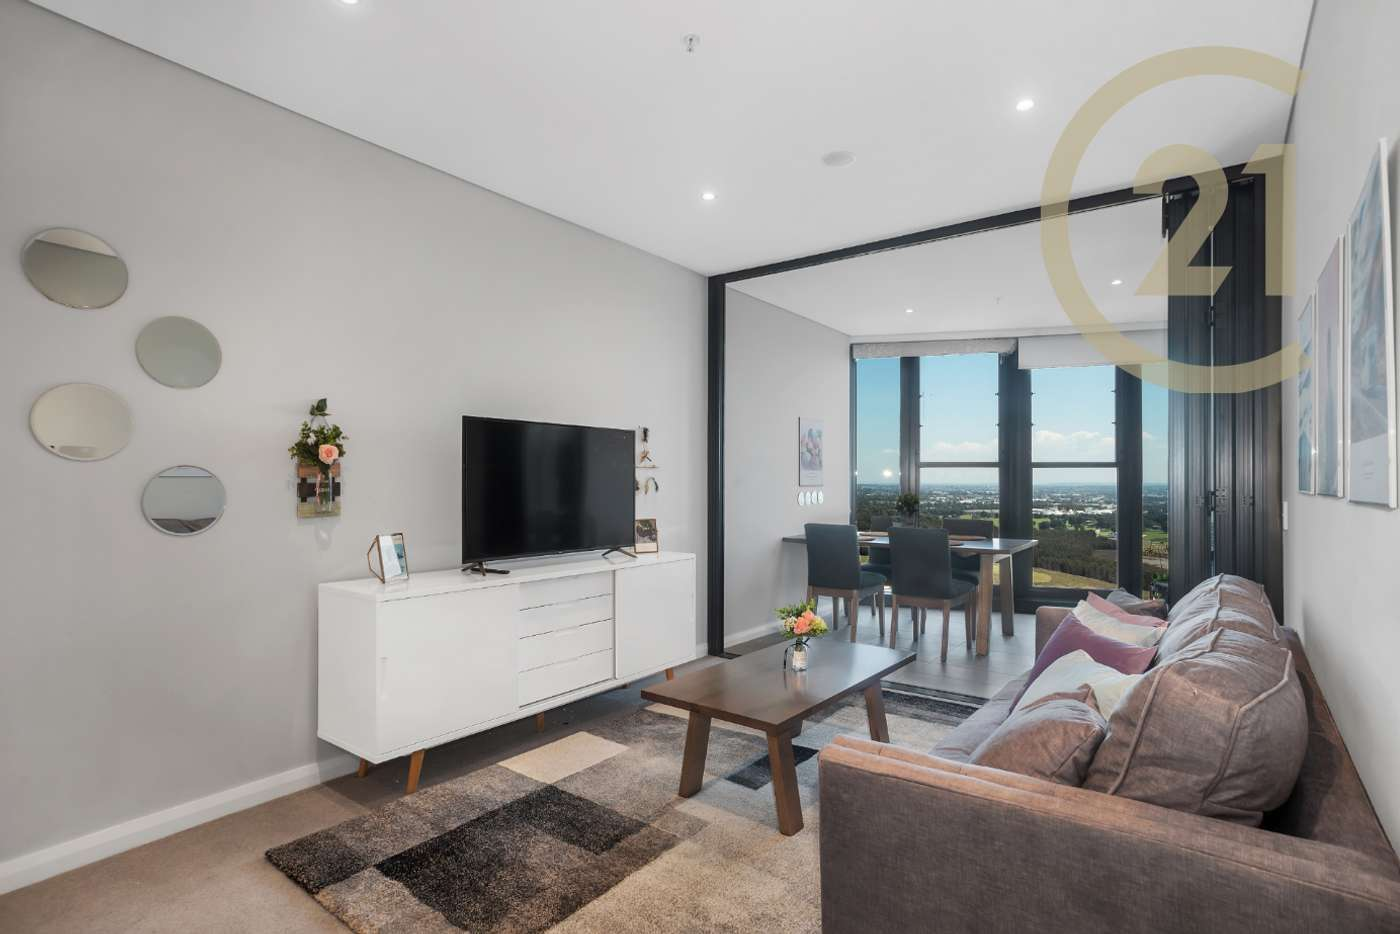 Main view of Homely apartment listing, 2510/2 Waterway st, Wentworth Point NSW 2127